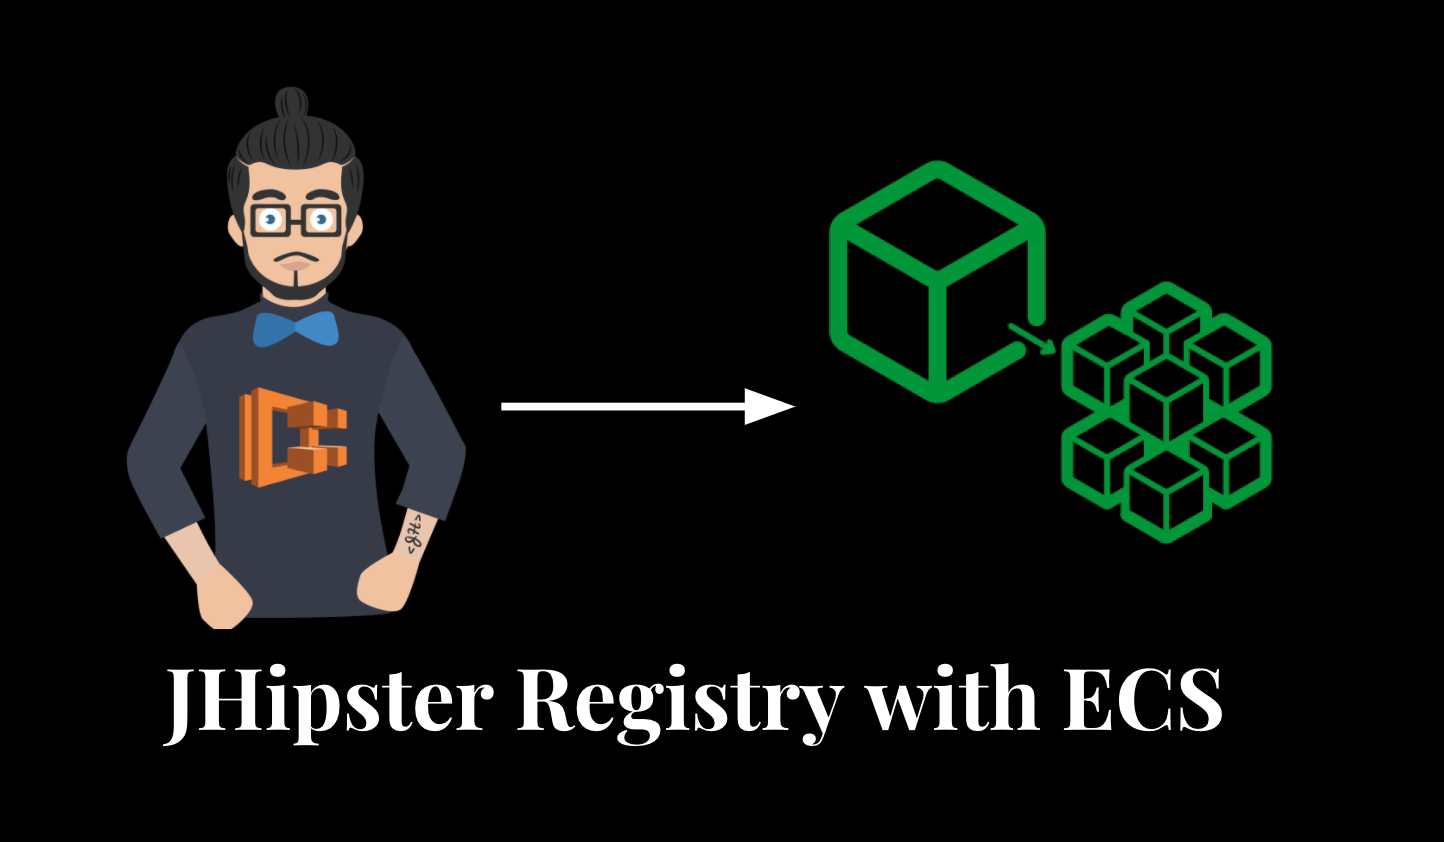 JHipster Registry with ECS